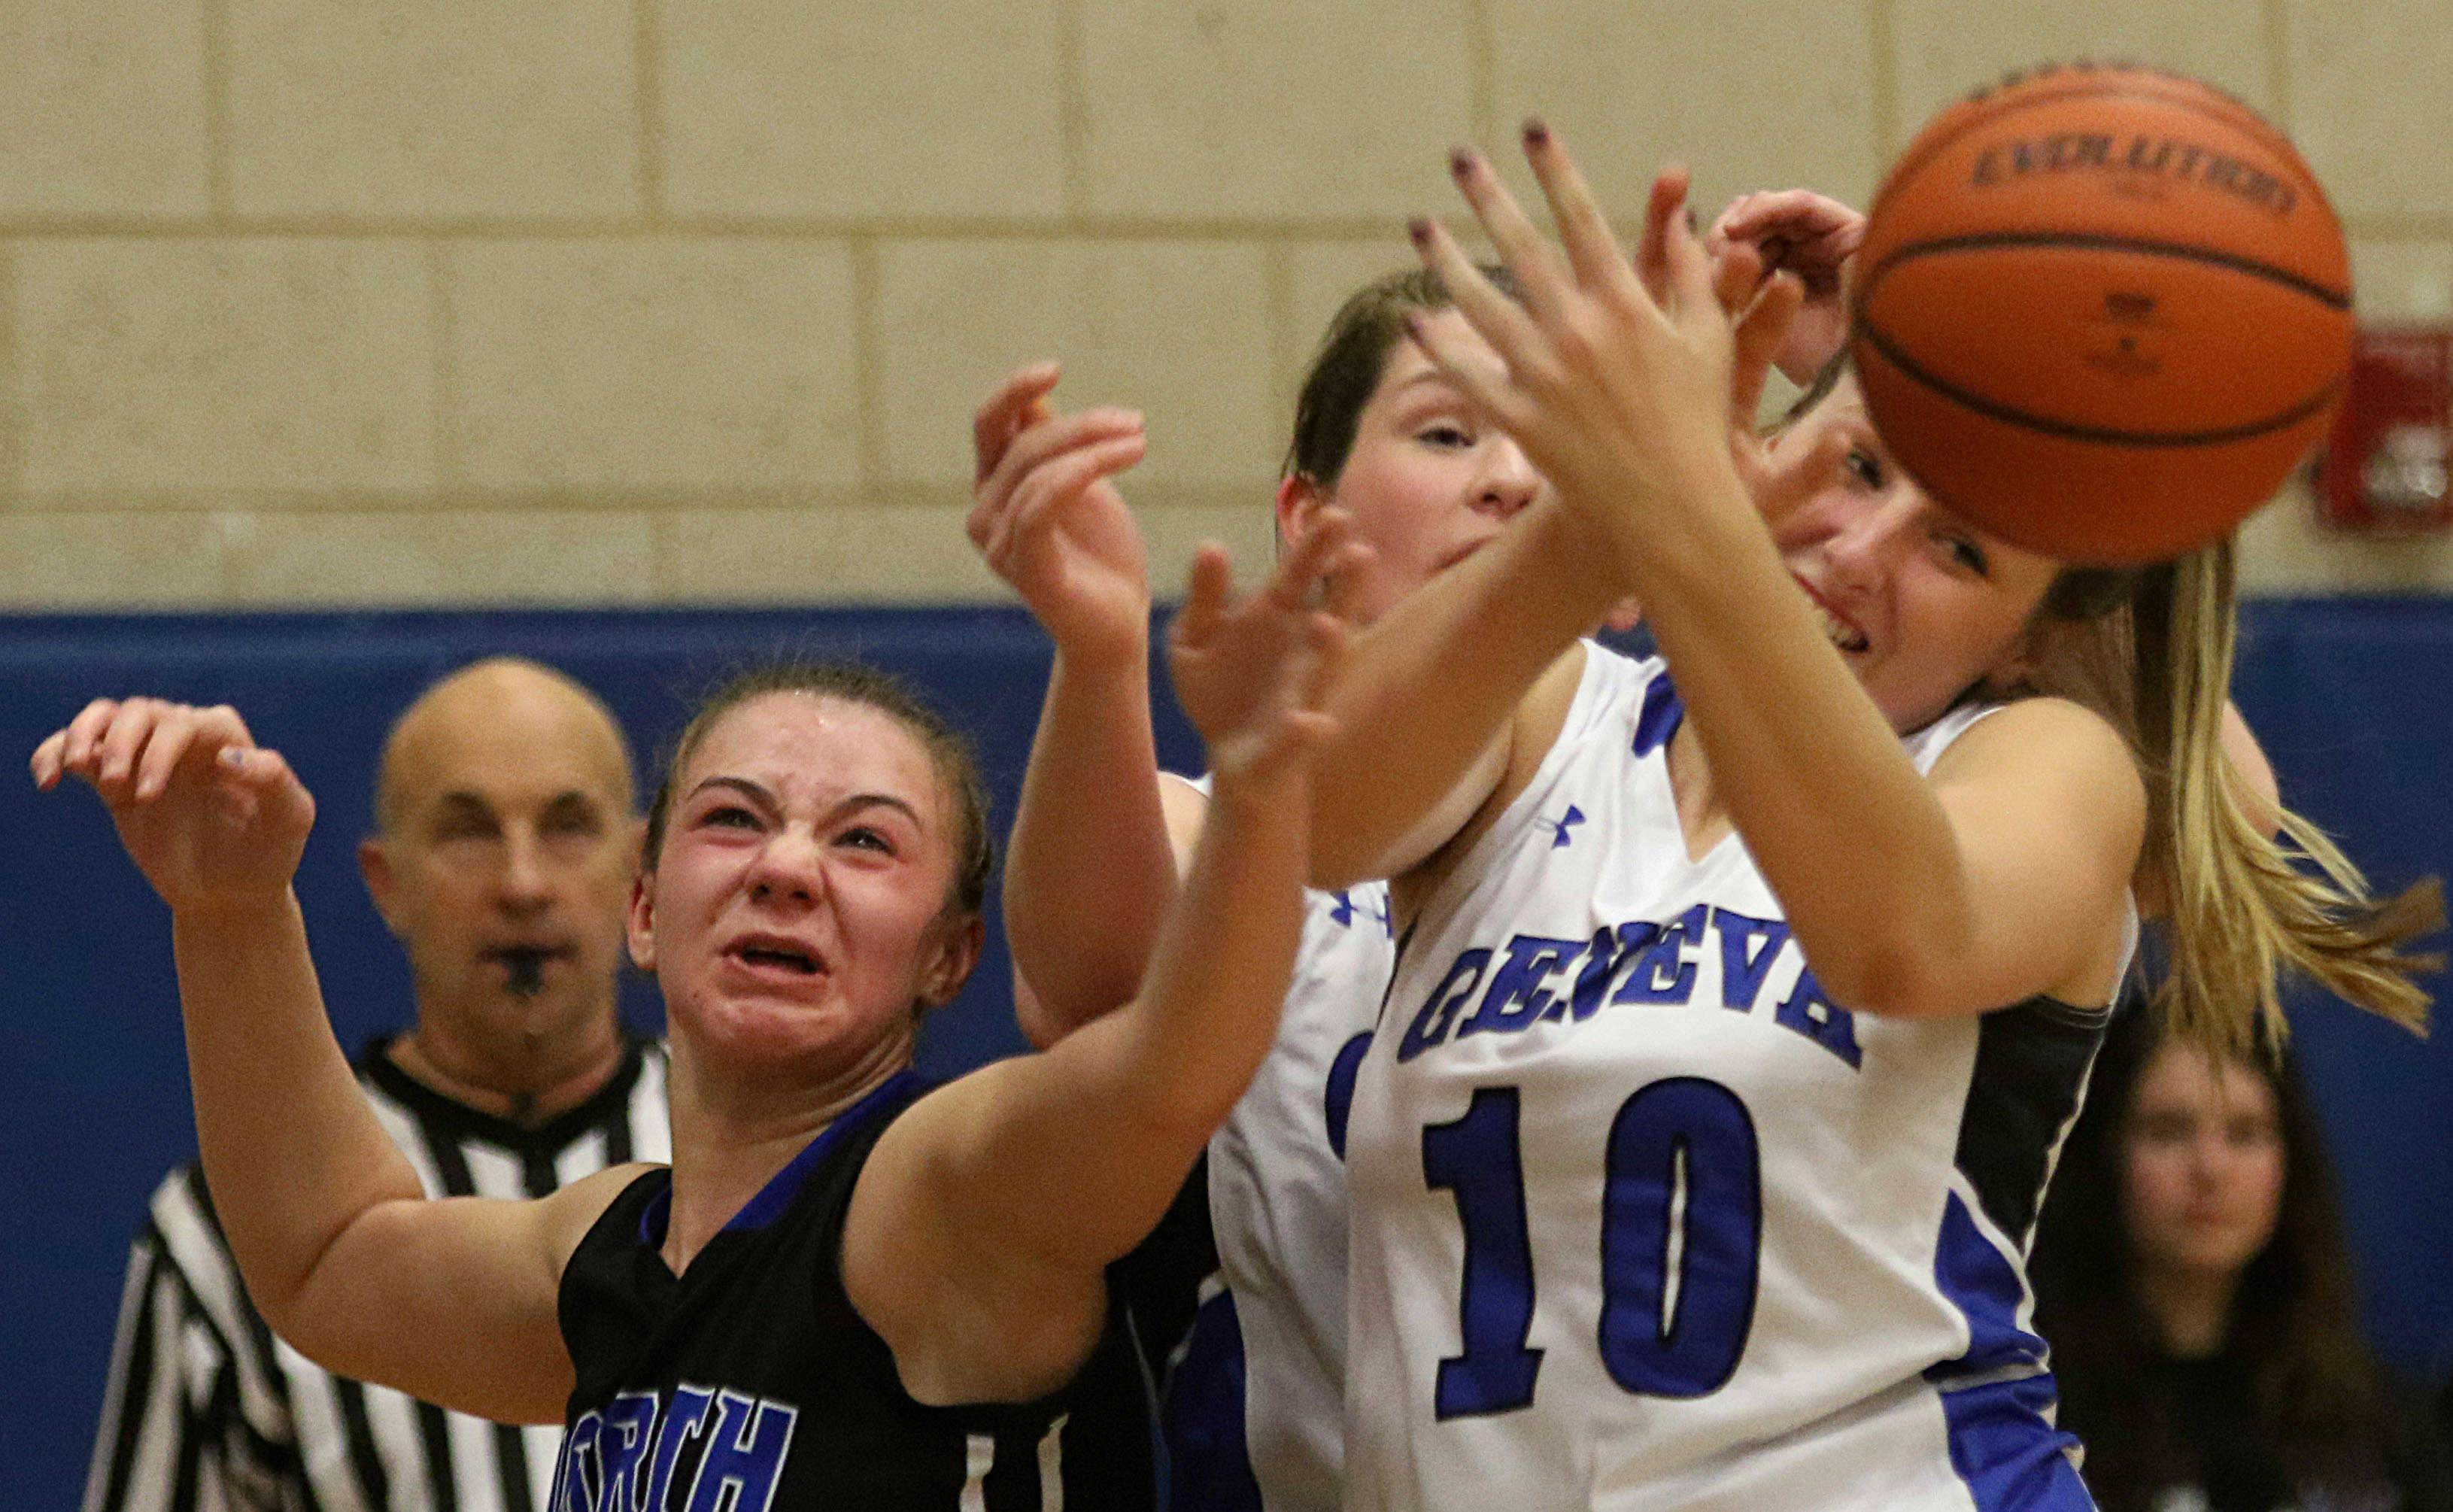 St. Charles North's Elizabeth Olsem, left, and Geneva's Grace Loberg battle for the ball during varsity girls basketball at Geneva Friday night.